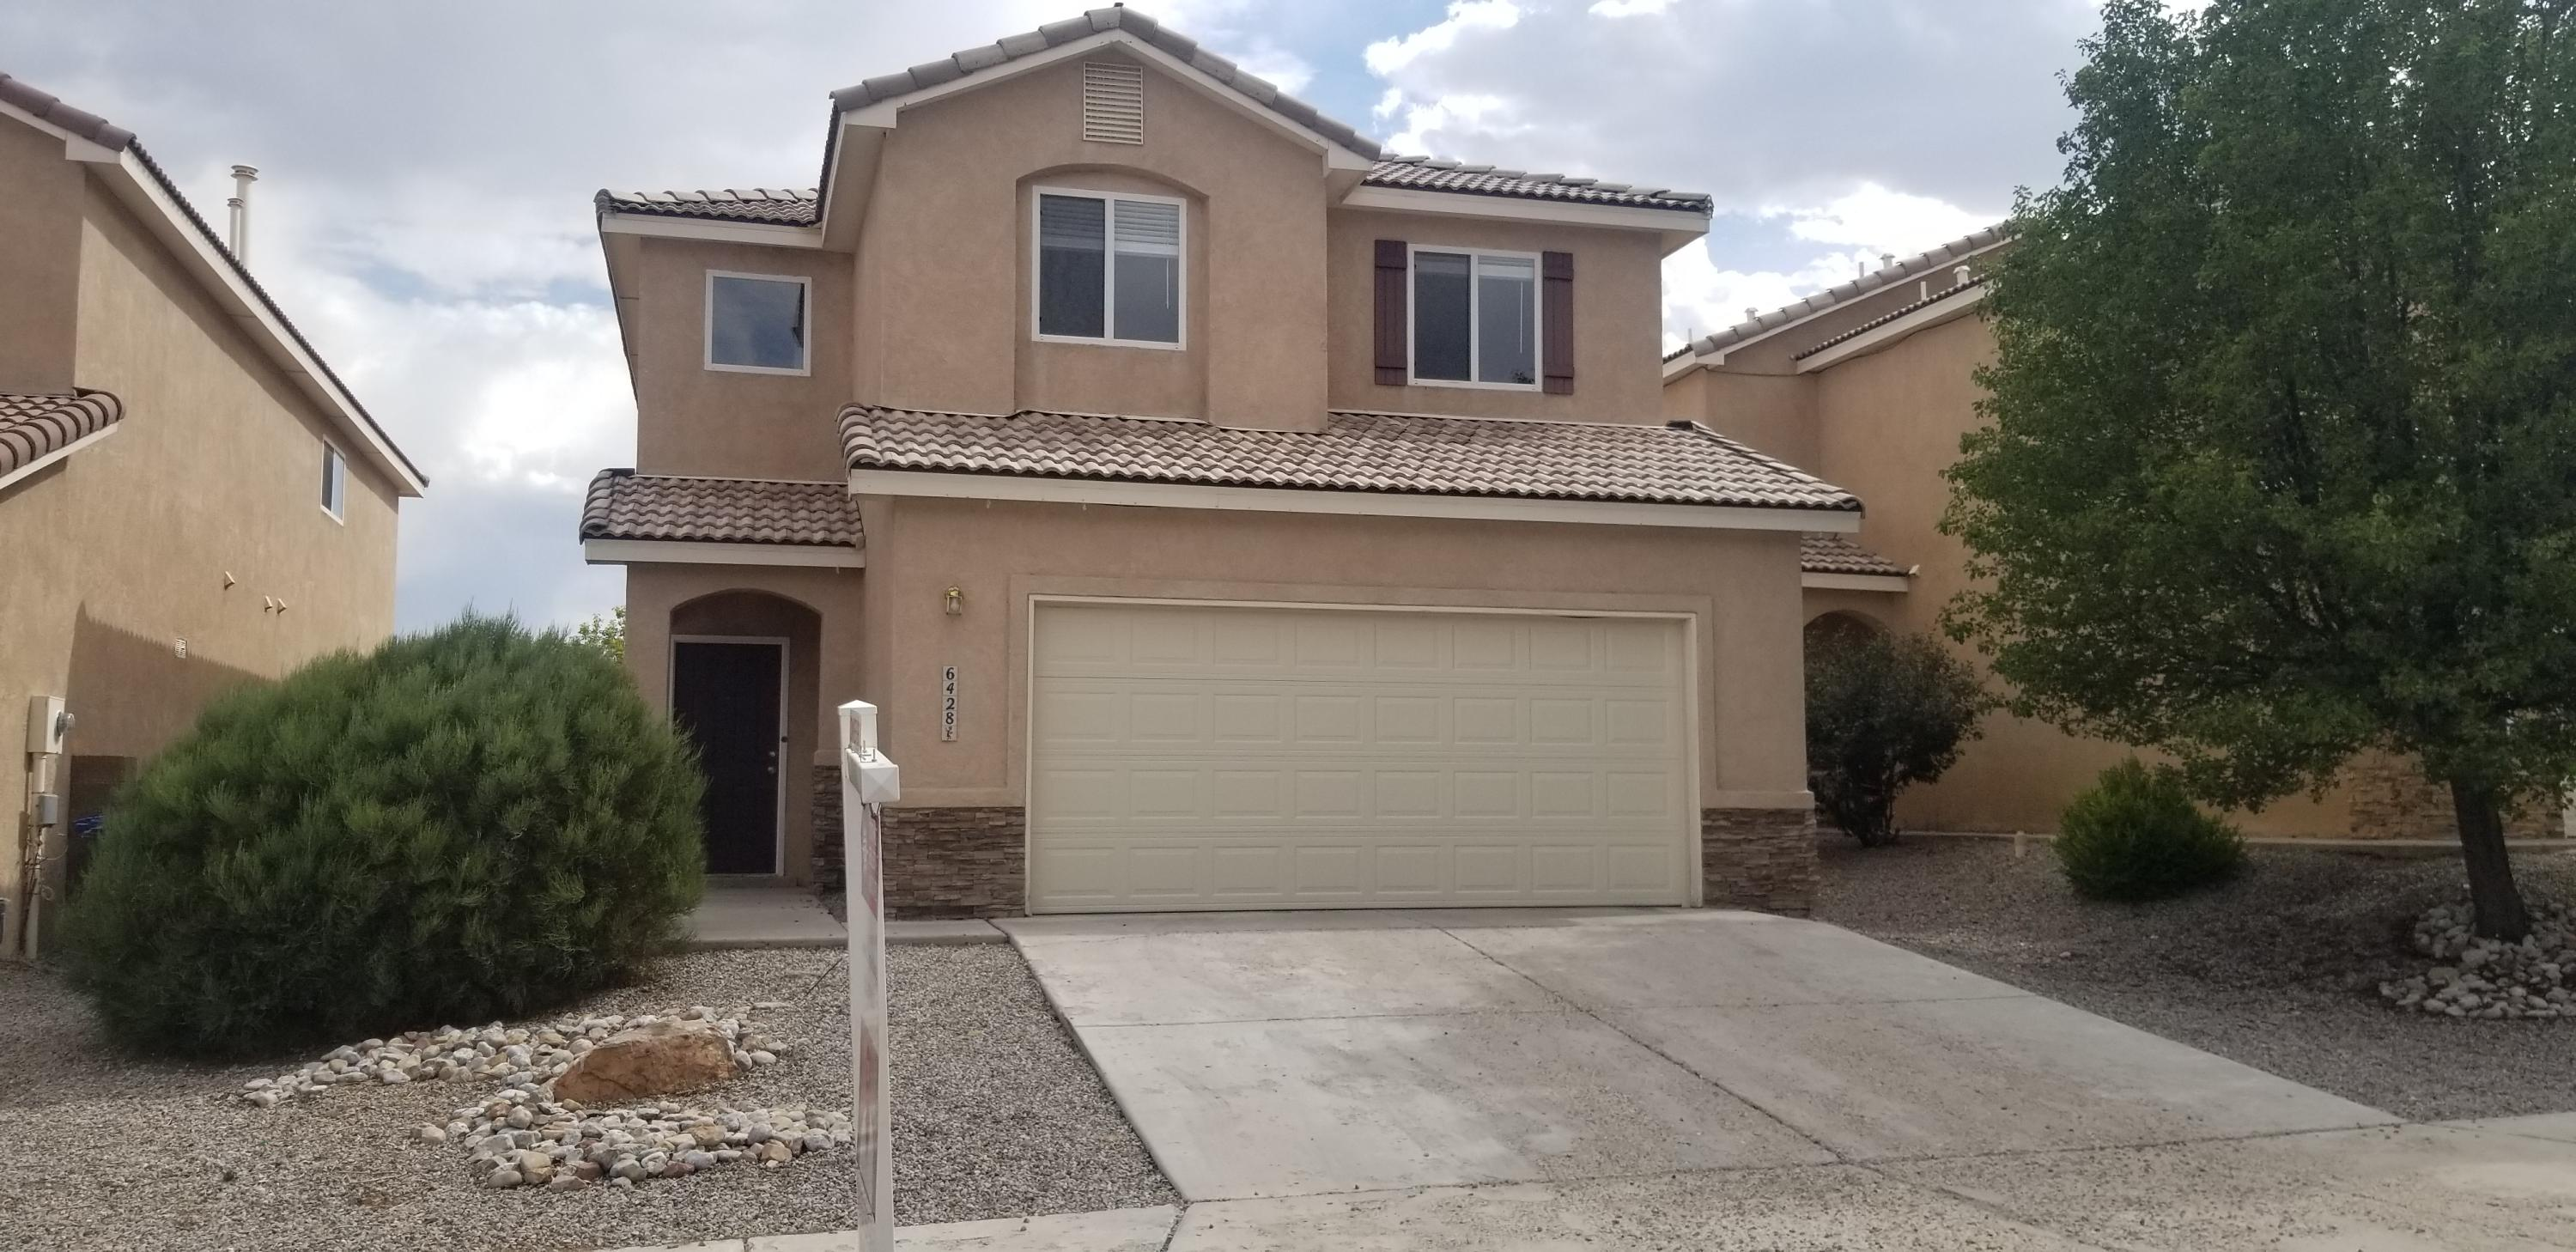 Nice sized 4 bedroom.  2 living areas downstairs.  New vinyl plank flooring and carpet in the rooms.  Fresh paint and Stainless steel appliances in the litchen.LAndscped front and back.